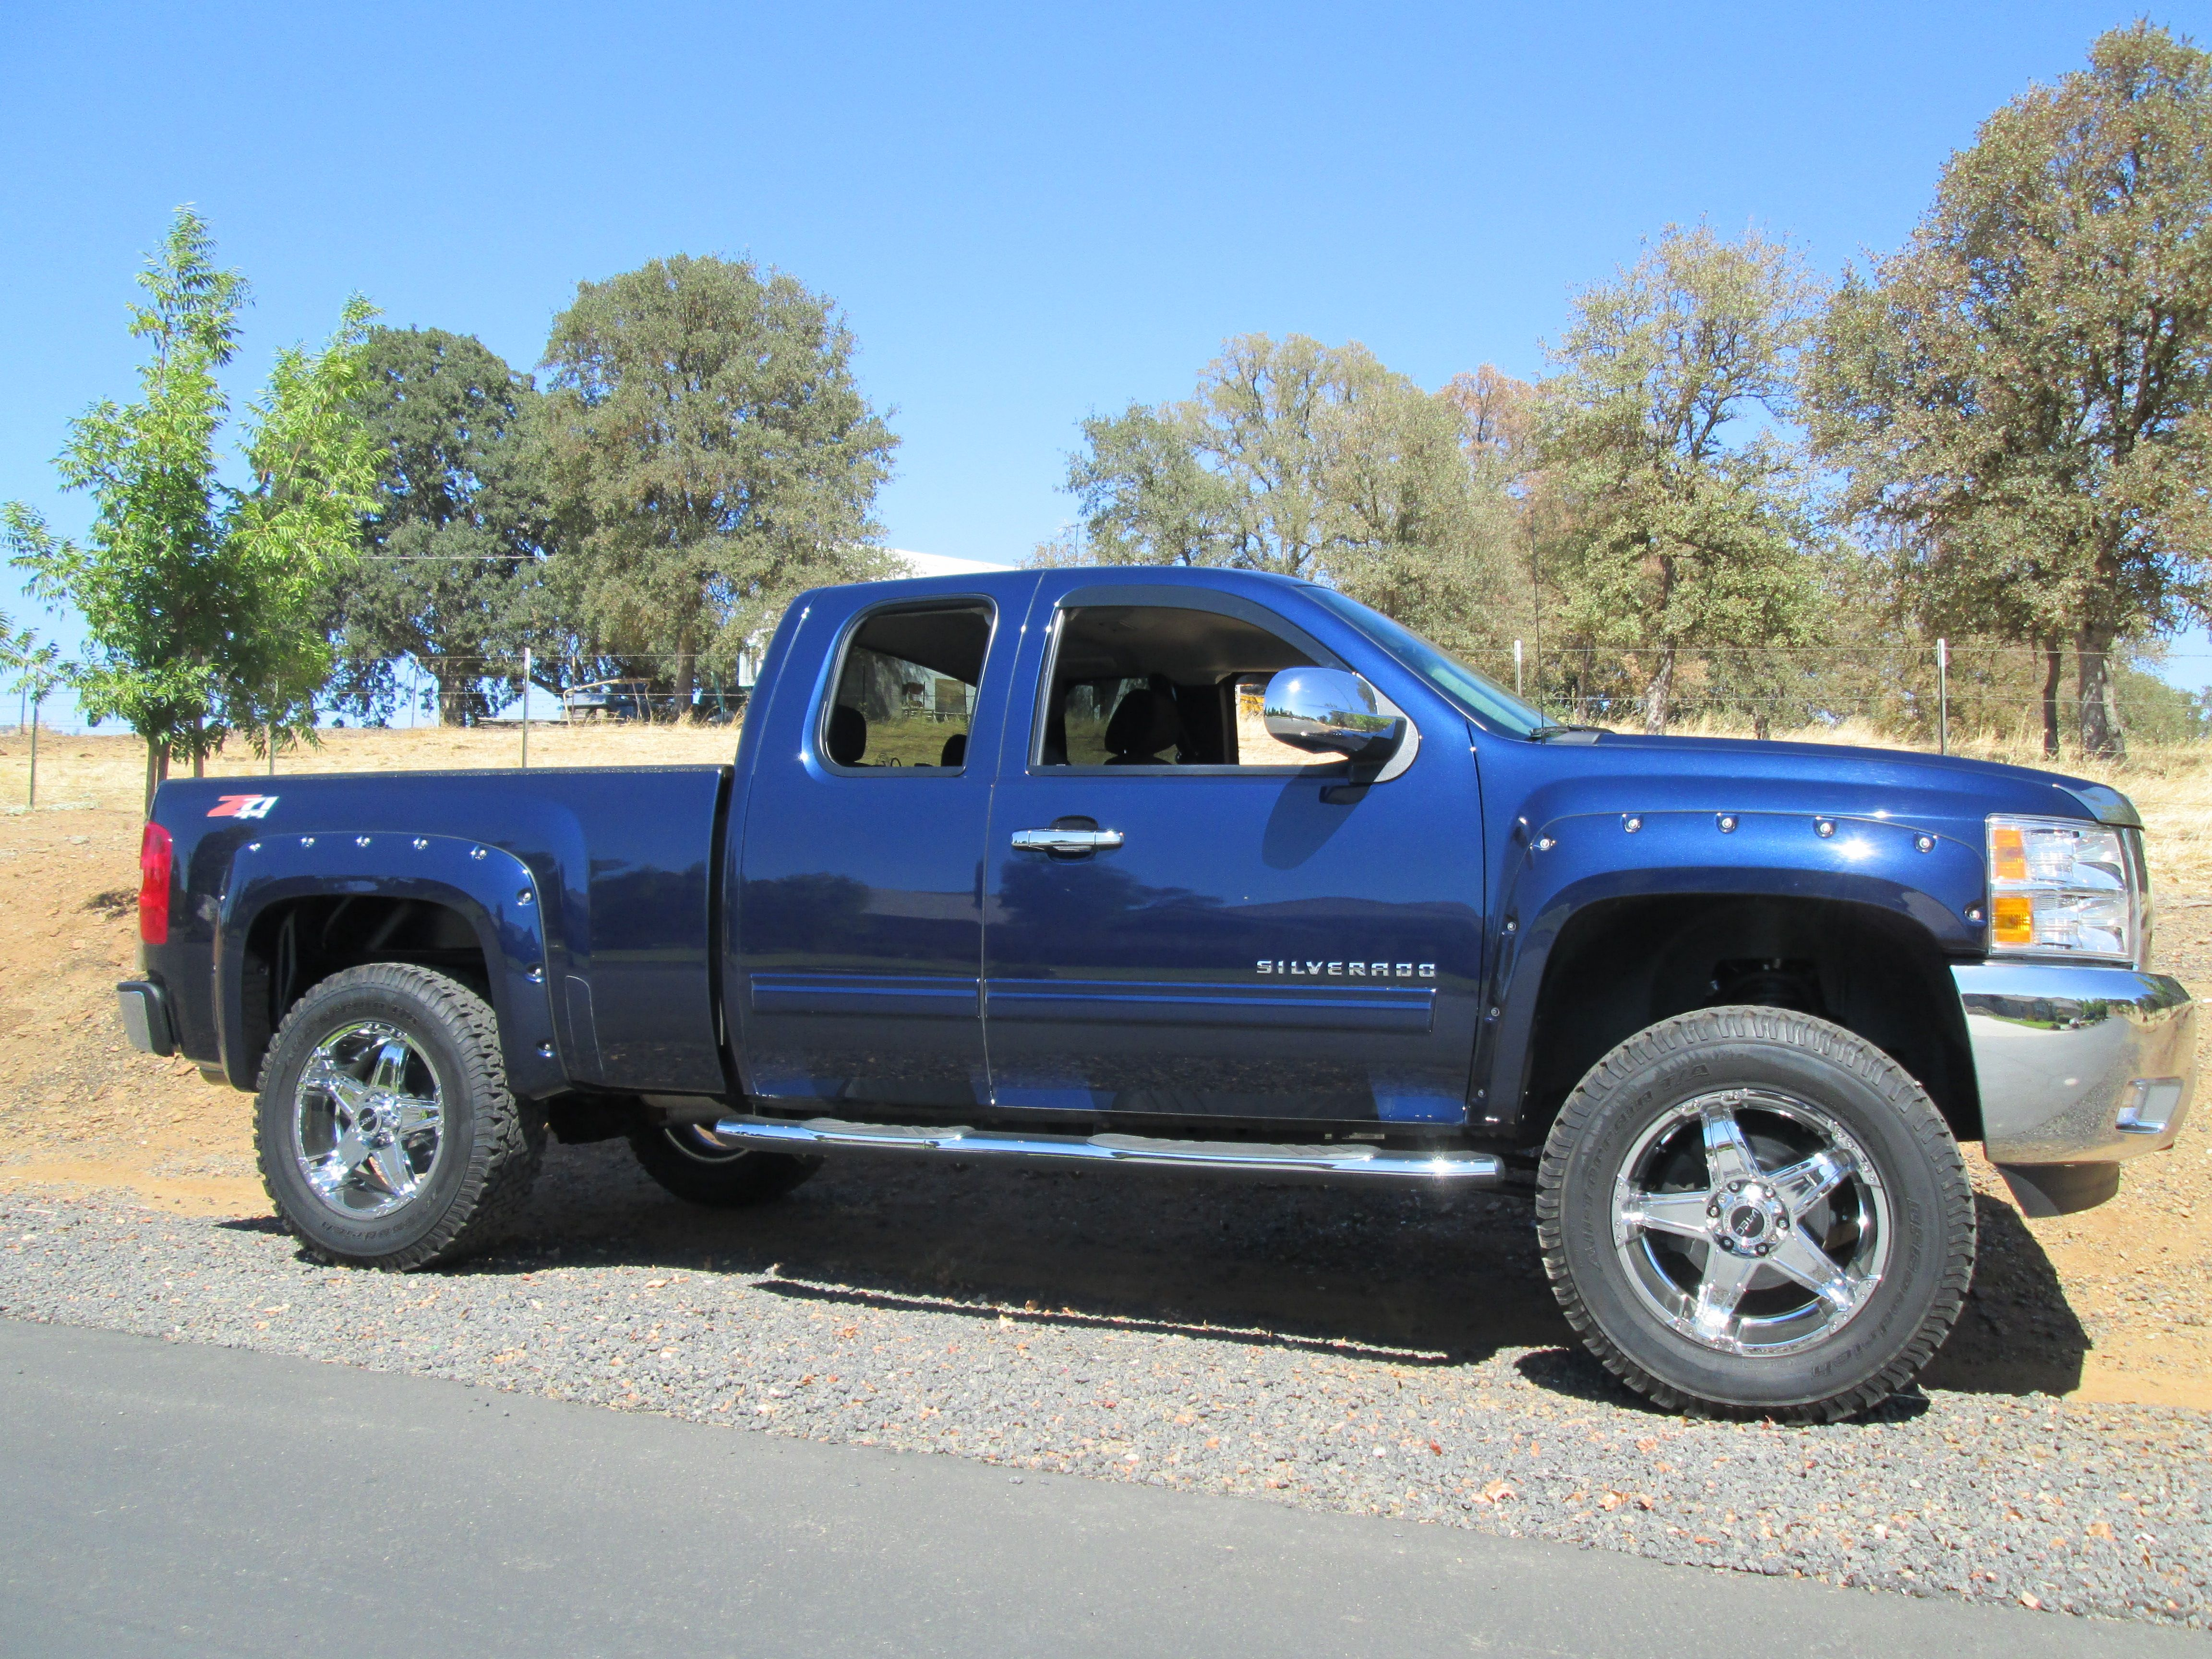 2012 Chevy Silverado 1500 Rocky Ridge 4 Inch Lift Kit And Custom Body Styling This Is My Baby Truck Yeah 2012 Chevy Silverado Chevy Silverado 1500